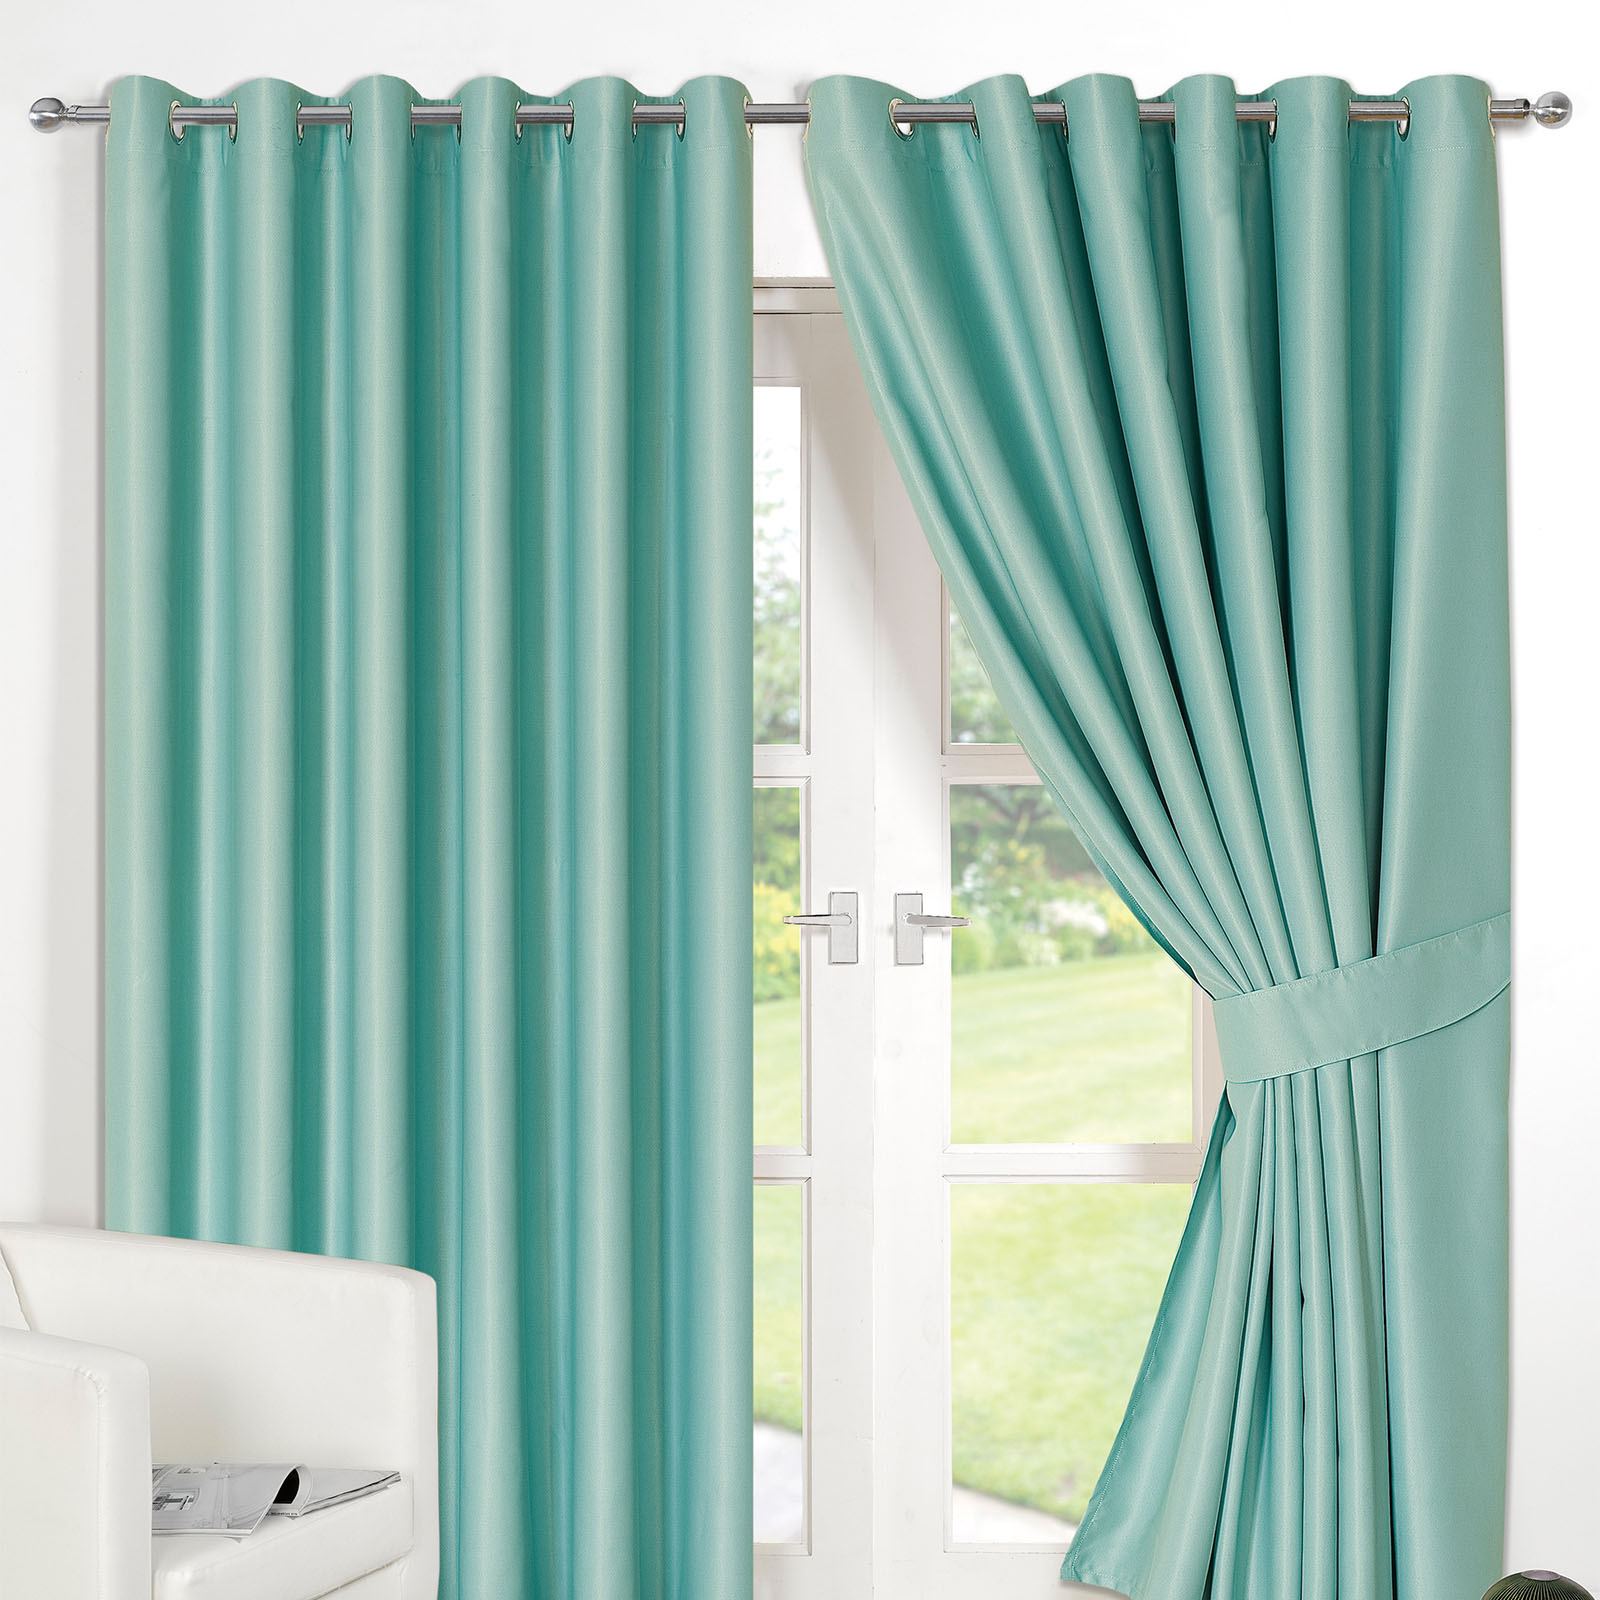 Ready Made Curtains 108 Drop Details About Ring Top Fully Lined Pair Eyelet Ready Made Curtains Luxury Thermal Blackout